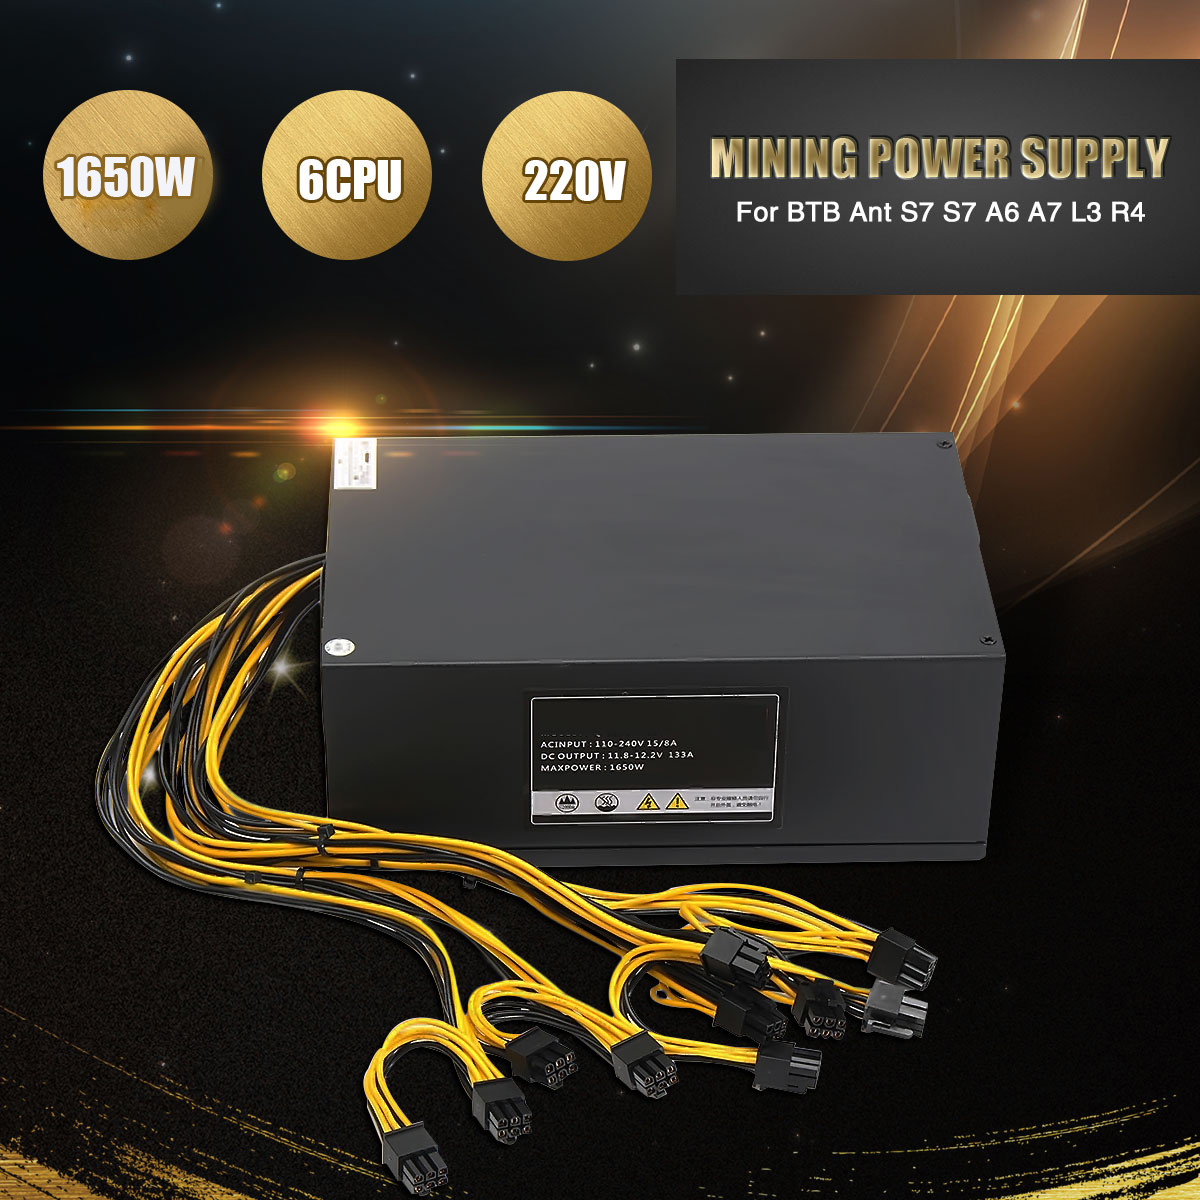 Leory Professional 1650W 220V 6 CPU Miner Mining Dedicated Power Supply PC Power Supplies For BTB Ant S5 S7 S9 A6 A7 R4 new max 1850w miner mining power supply 6 pin for antminer coin btb s9 s7 a7 a6 l3 r4 high quality computer power supply for btc